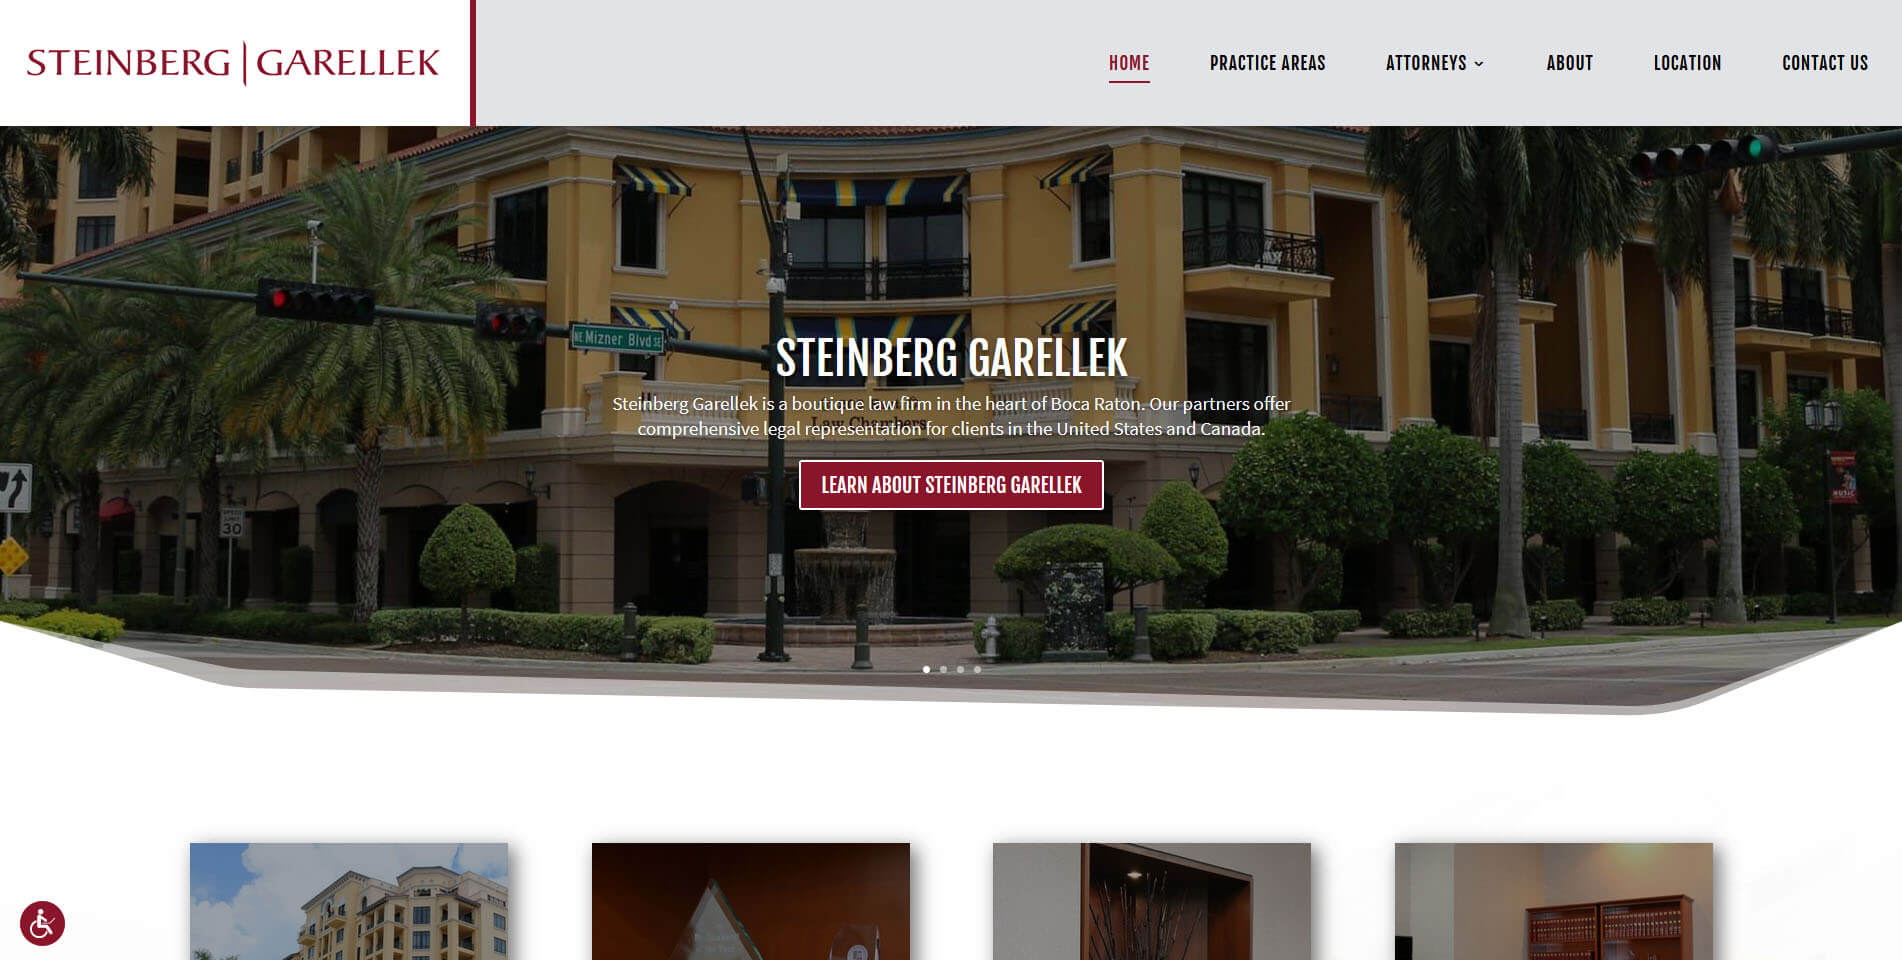 An image of the Steinberg Garellek website homepage, created by Not Fade Away Marketing of South Florida.